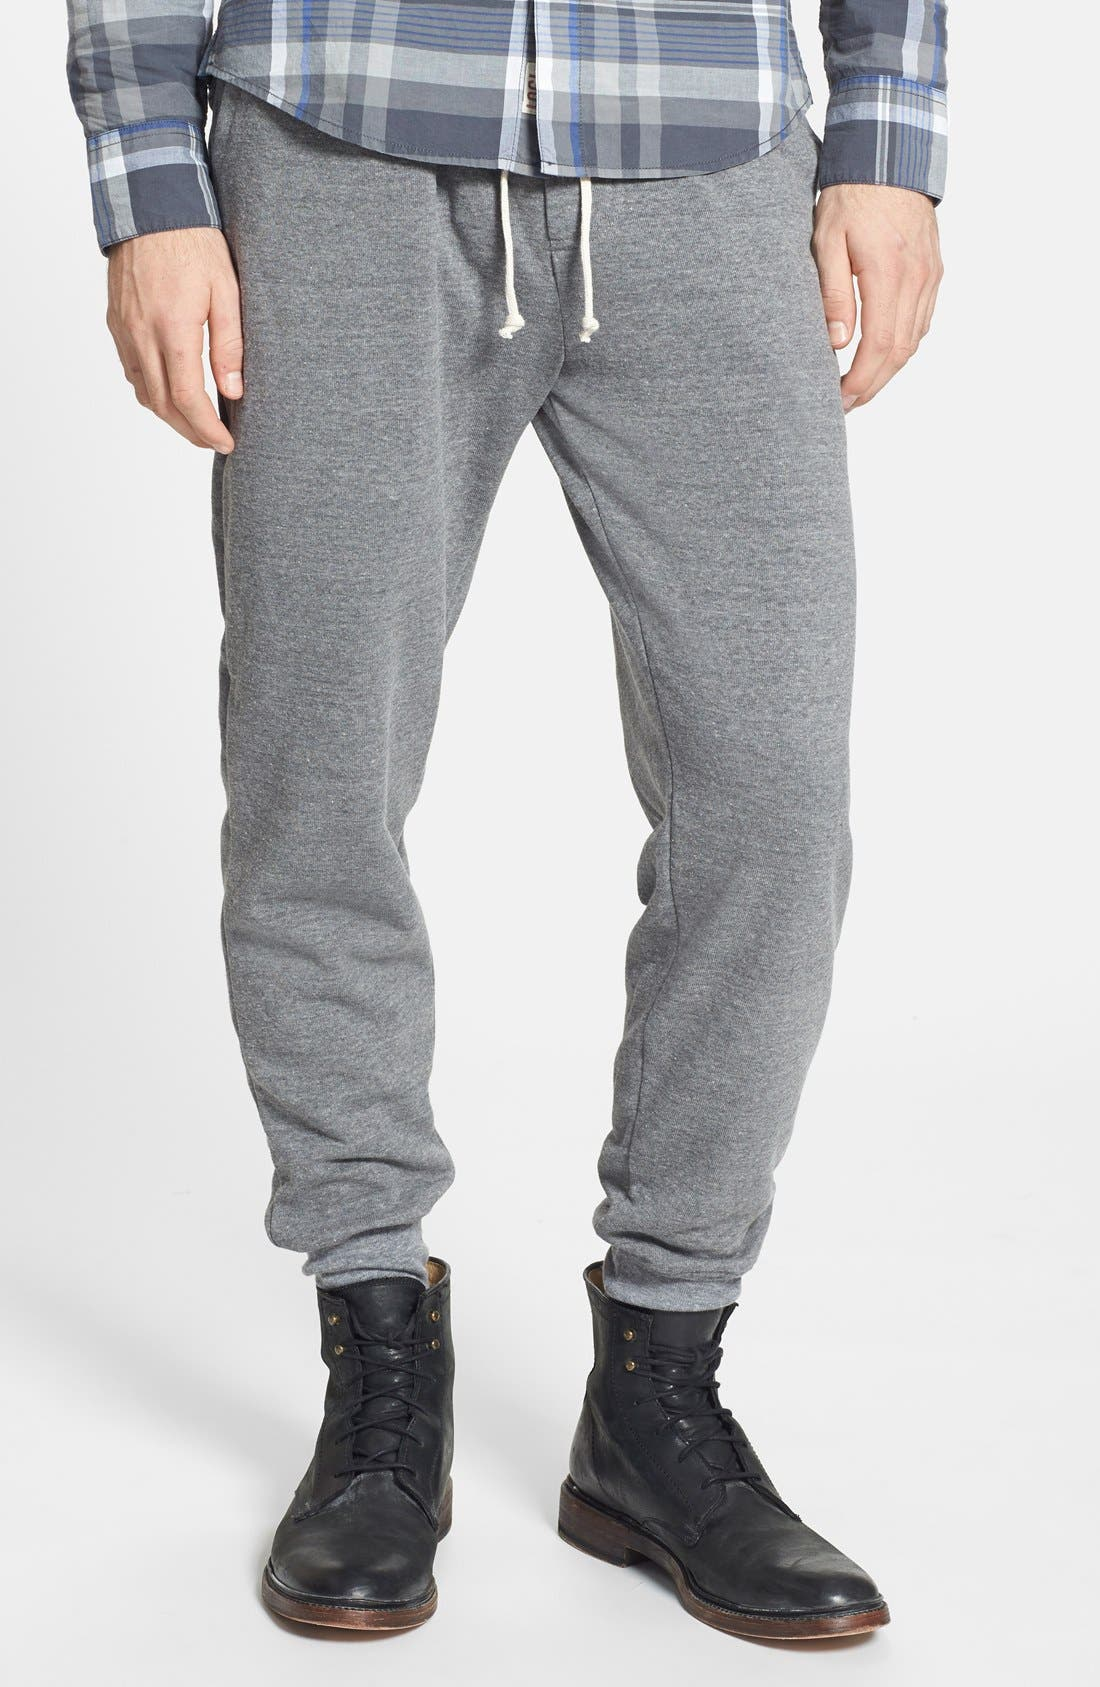 'Dodgeball' Eco Fleece Sweatpants,                             Main thumbnail 3, color,